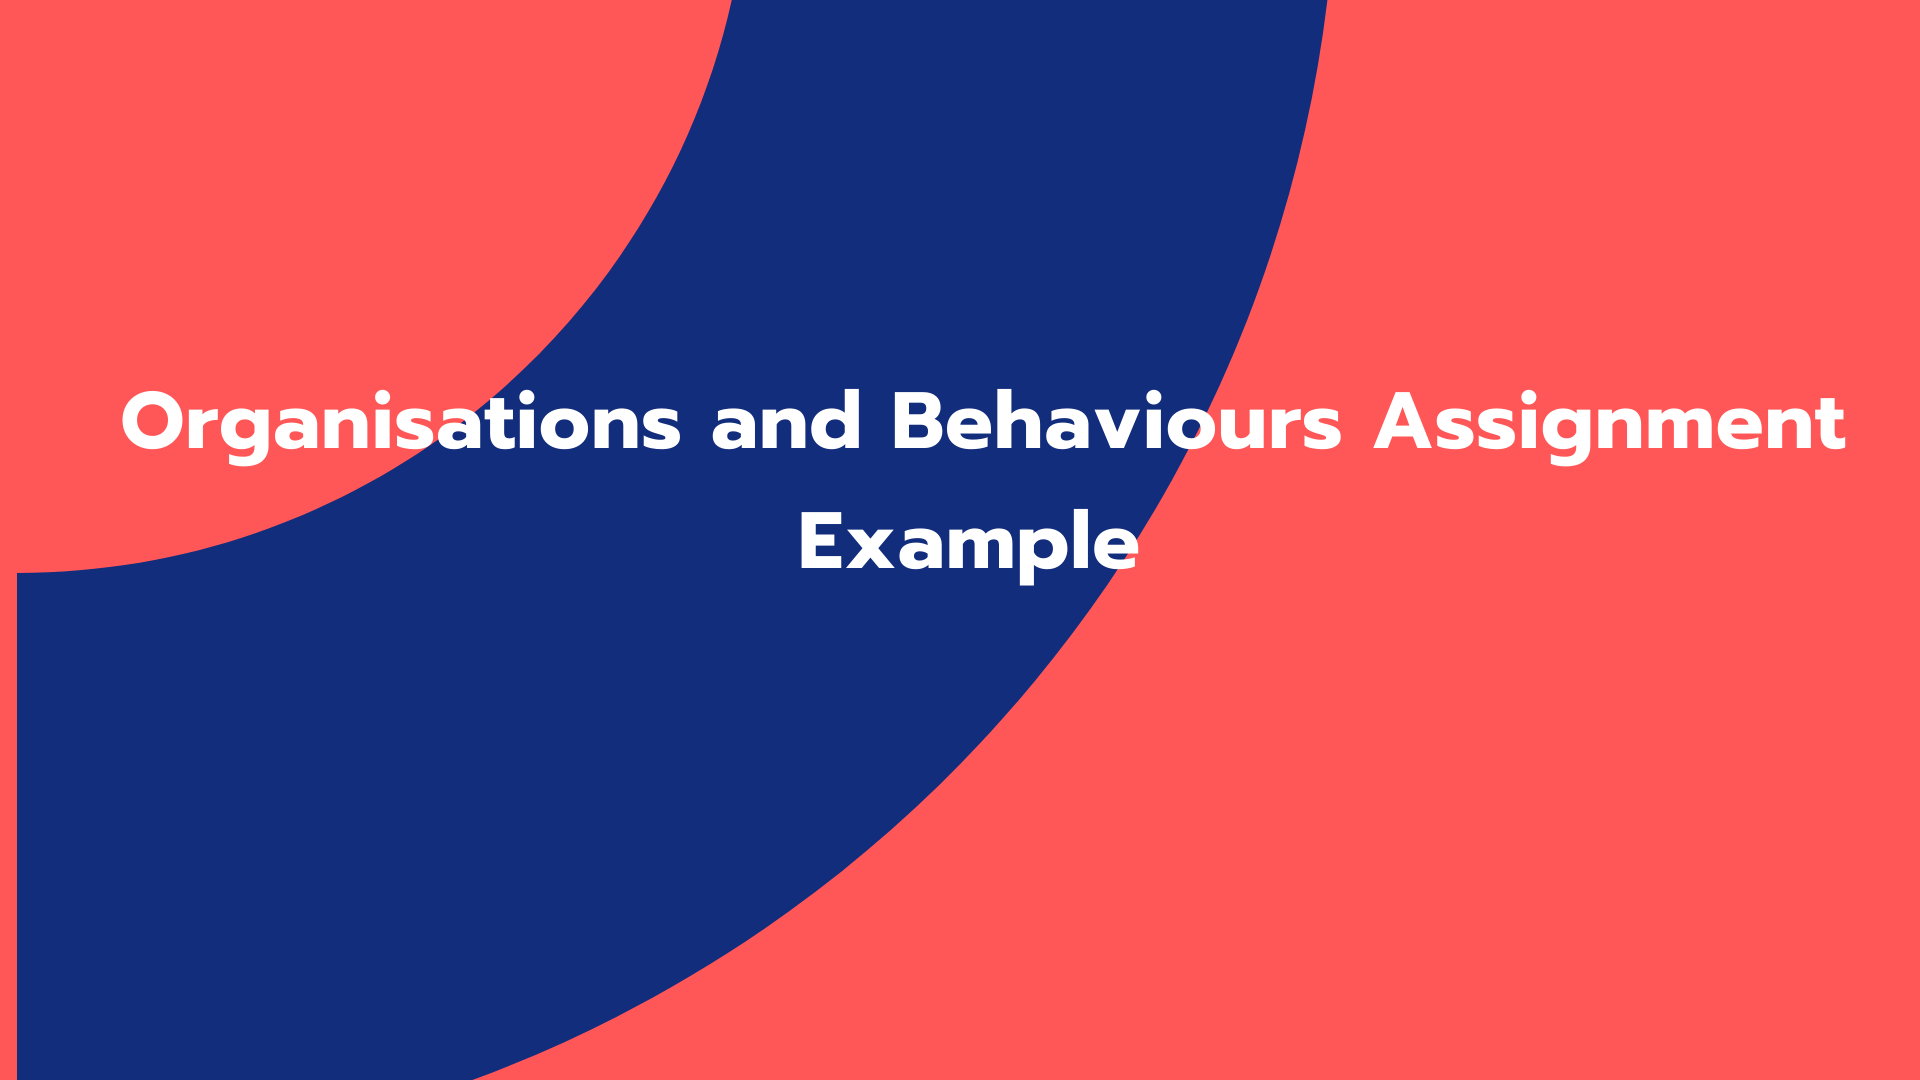 Organisations and Behaviours Assignment Example